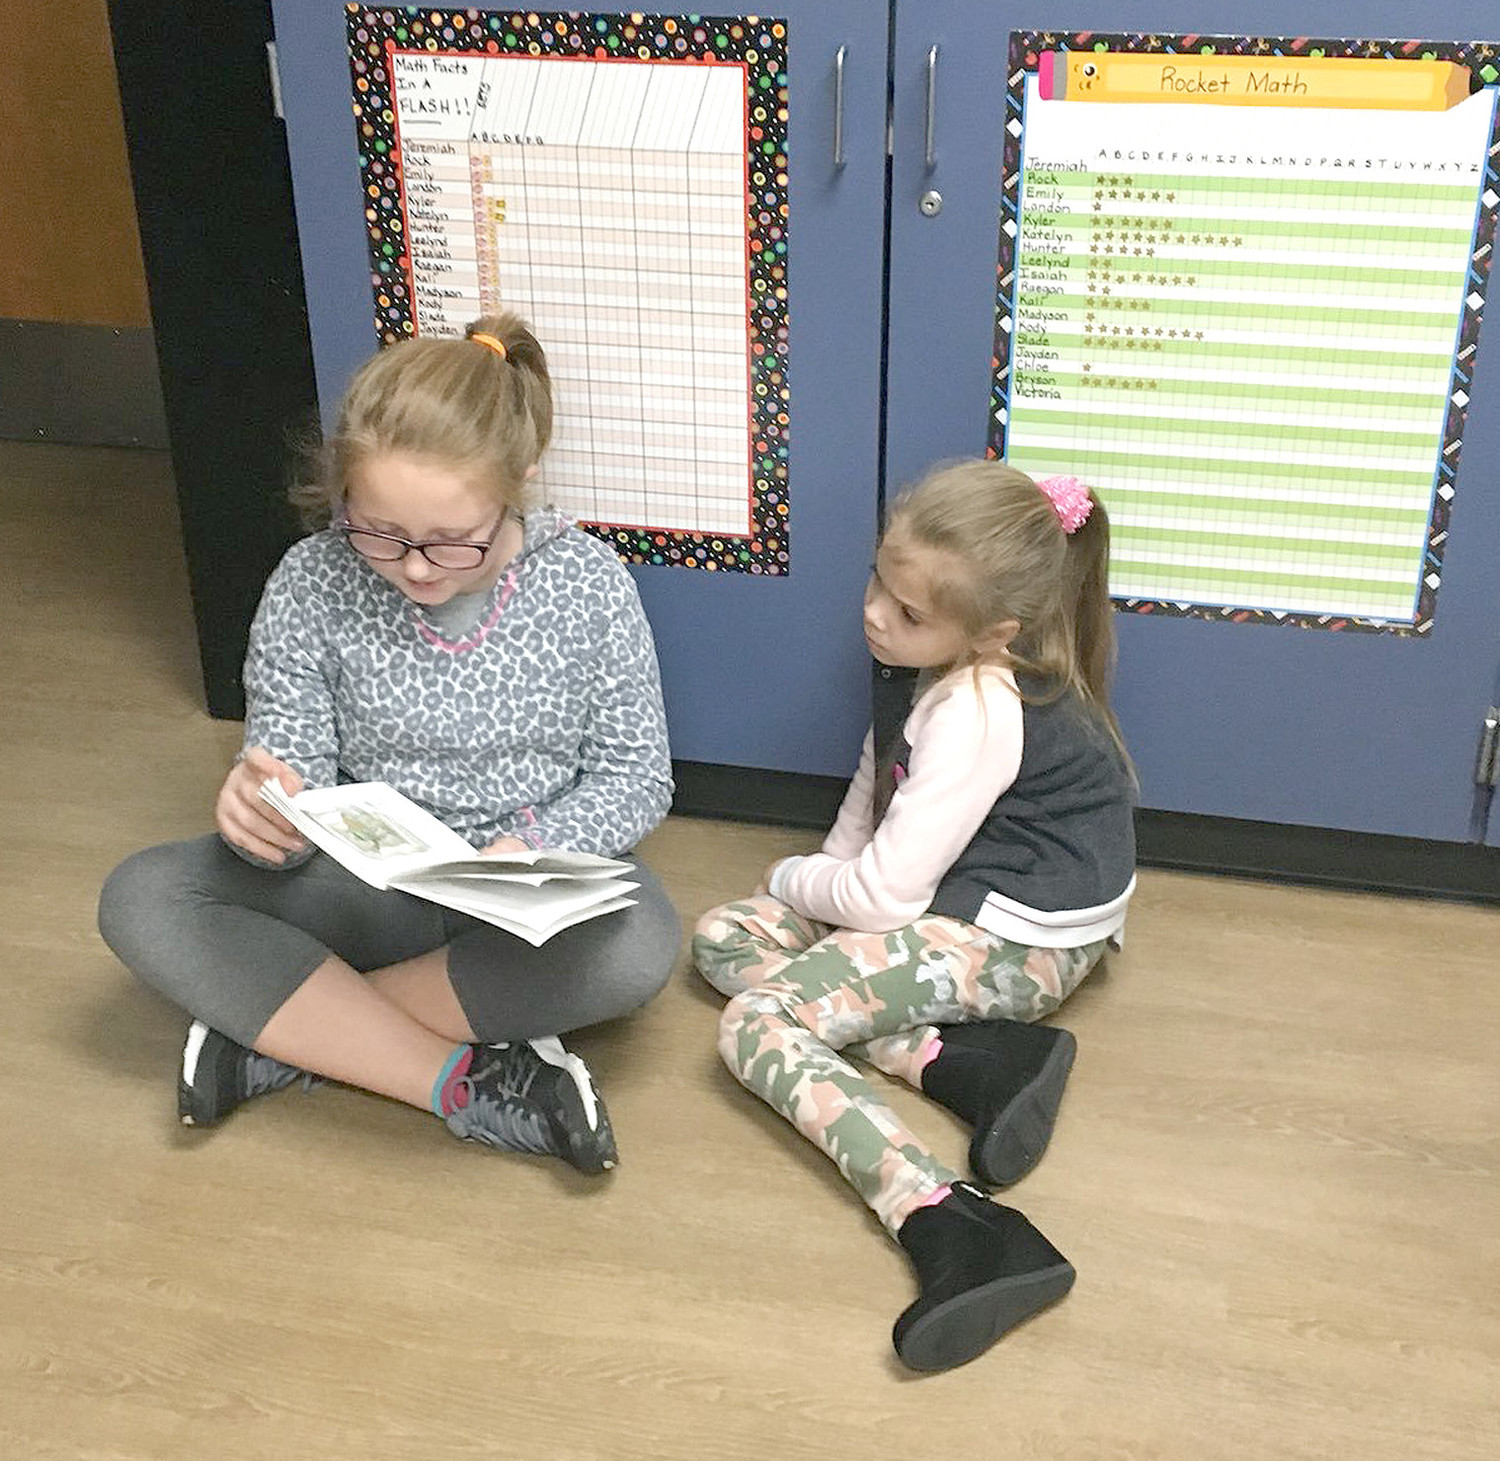 Kambria Charles reads a story to Madyson Ledford.